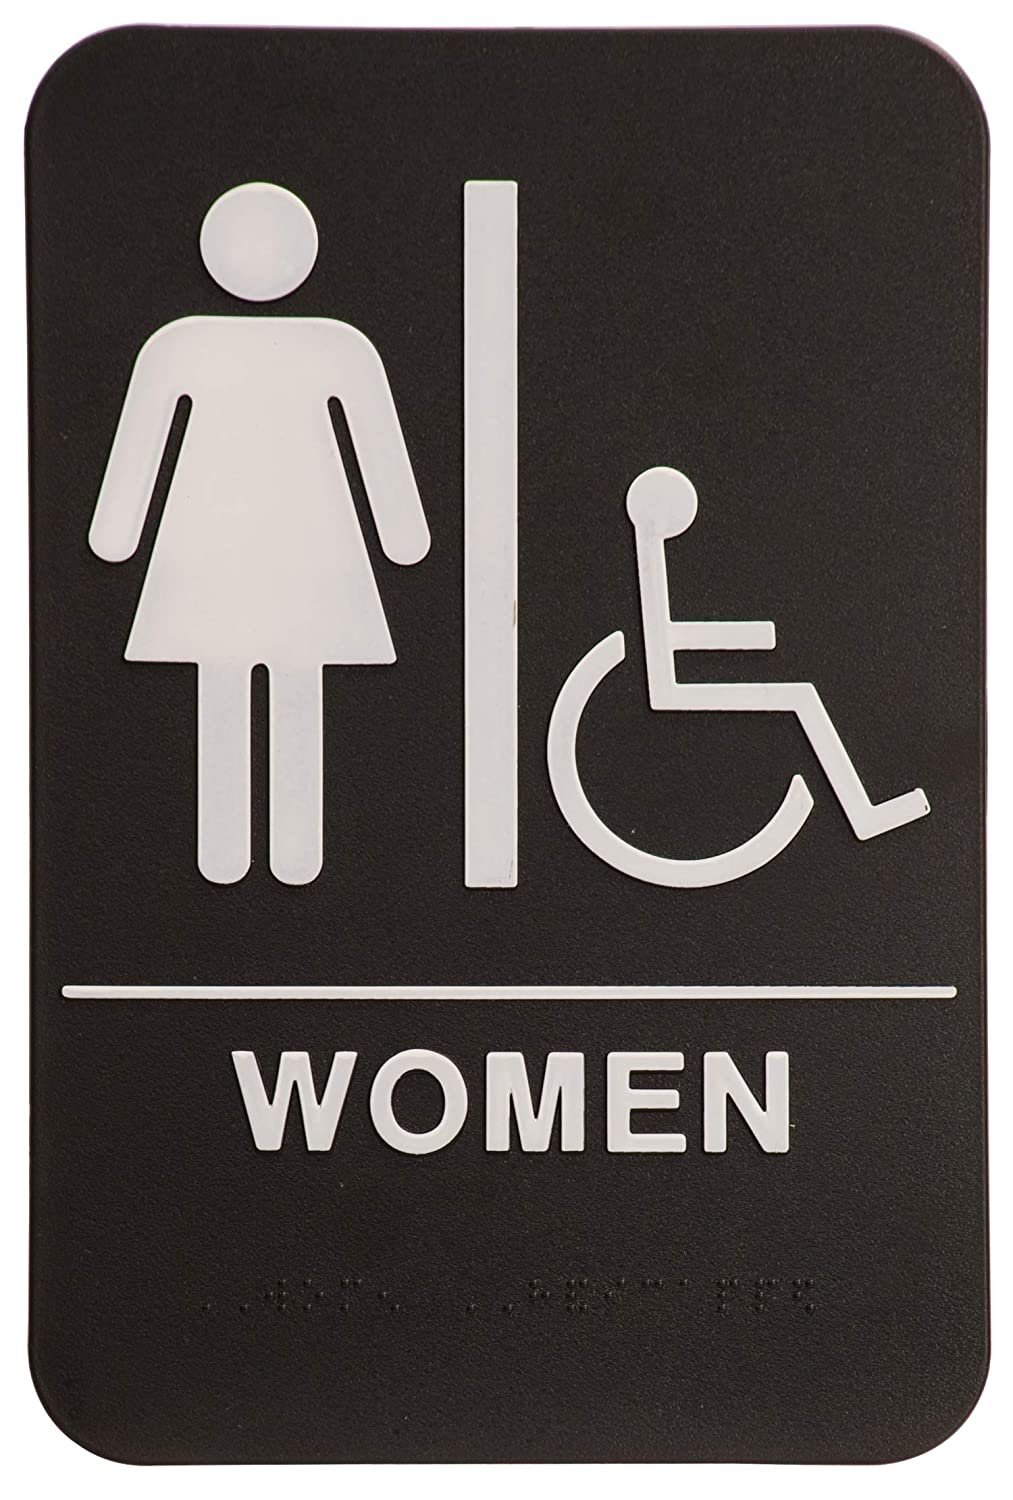 On Top Awards - Women's Bathroom Sign with Wheelchair Accessible 6